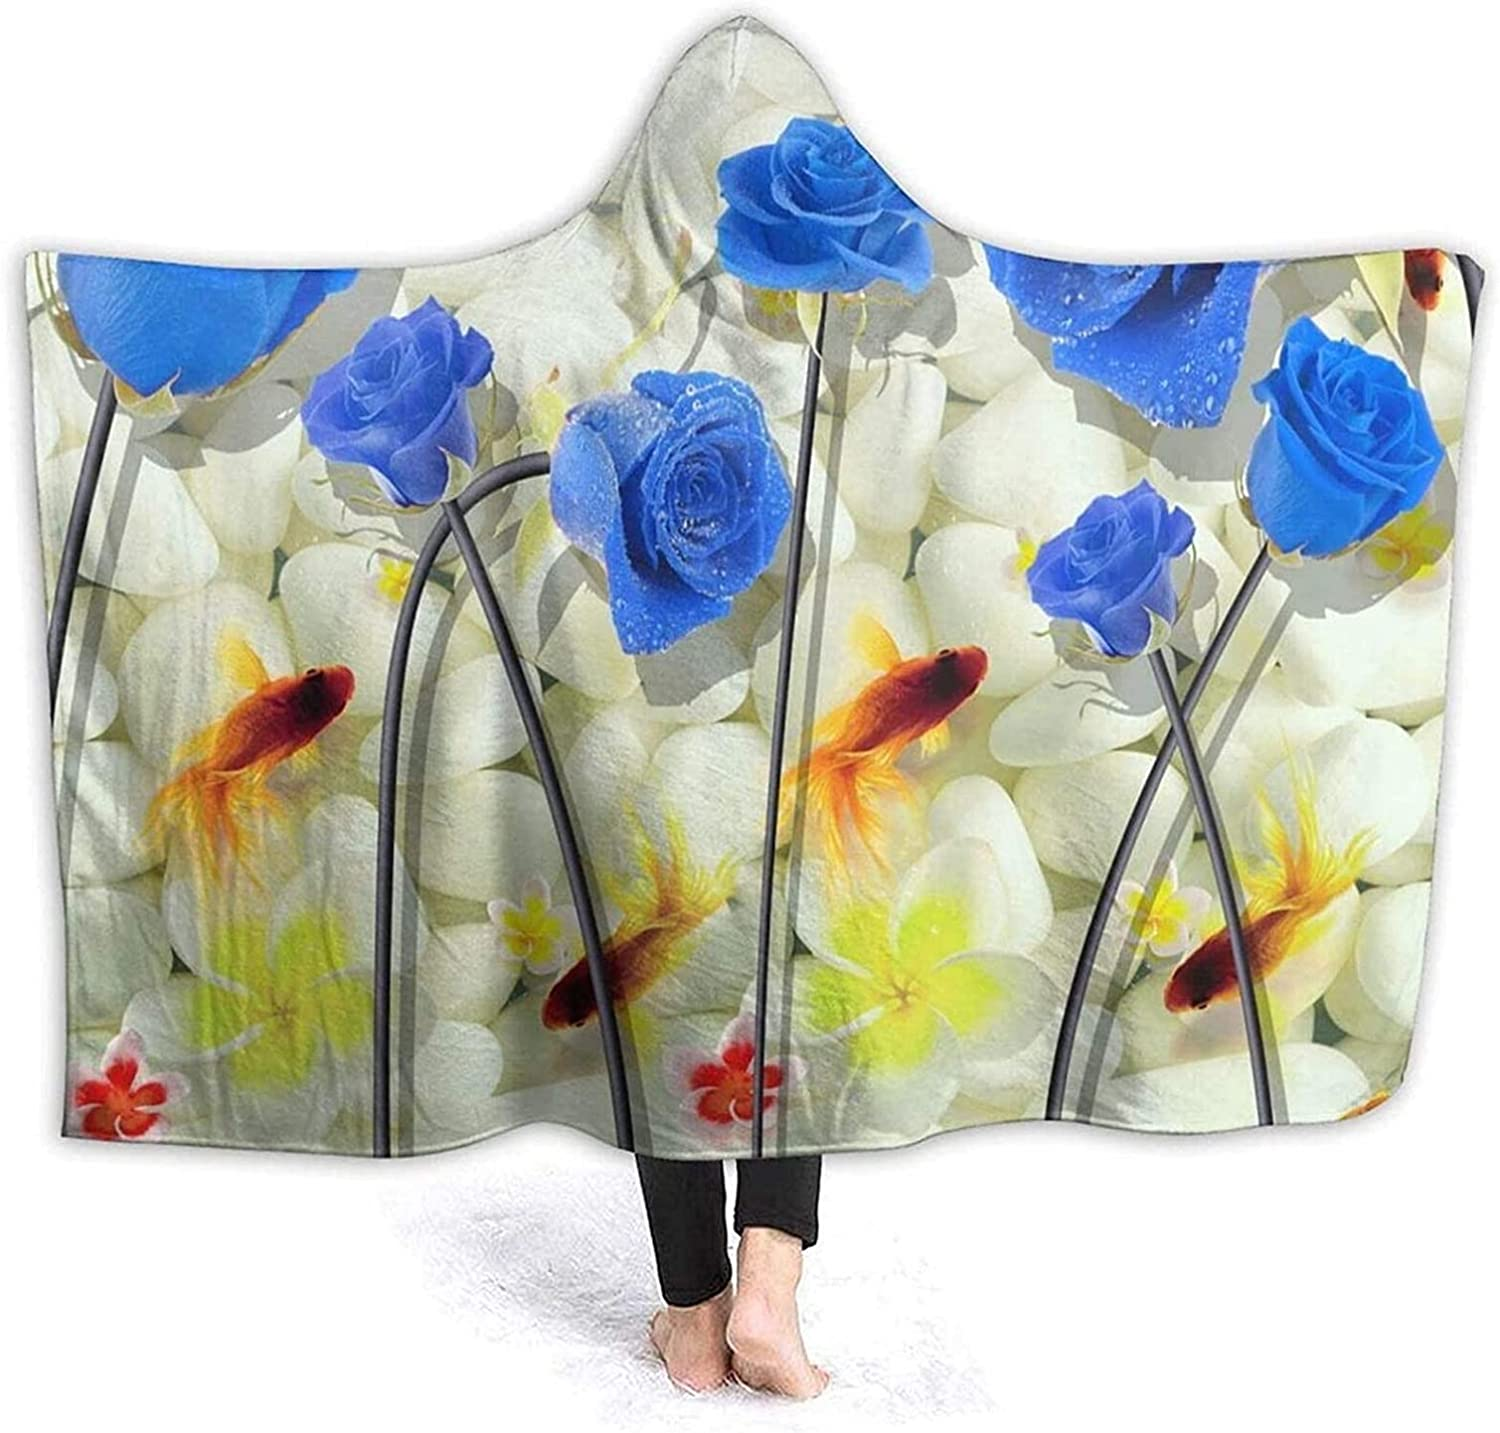 Blue Roses Hooded Throw Blanket, 3D White Stones Goldfish Beautiful Flower Bloom Garden Nature Warm Soft Fleece Wearable Blanket for Sofa Couch Bedroom 50